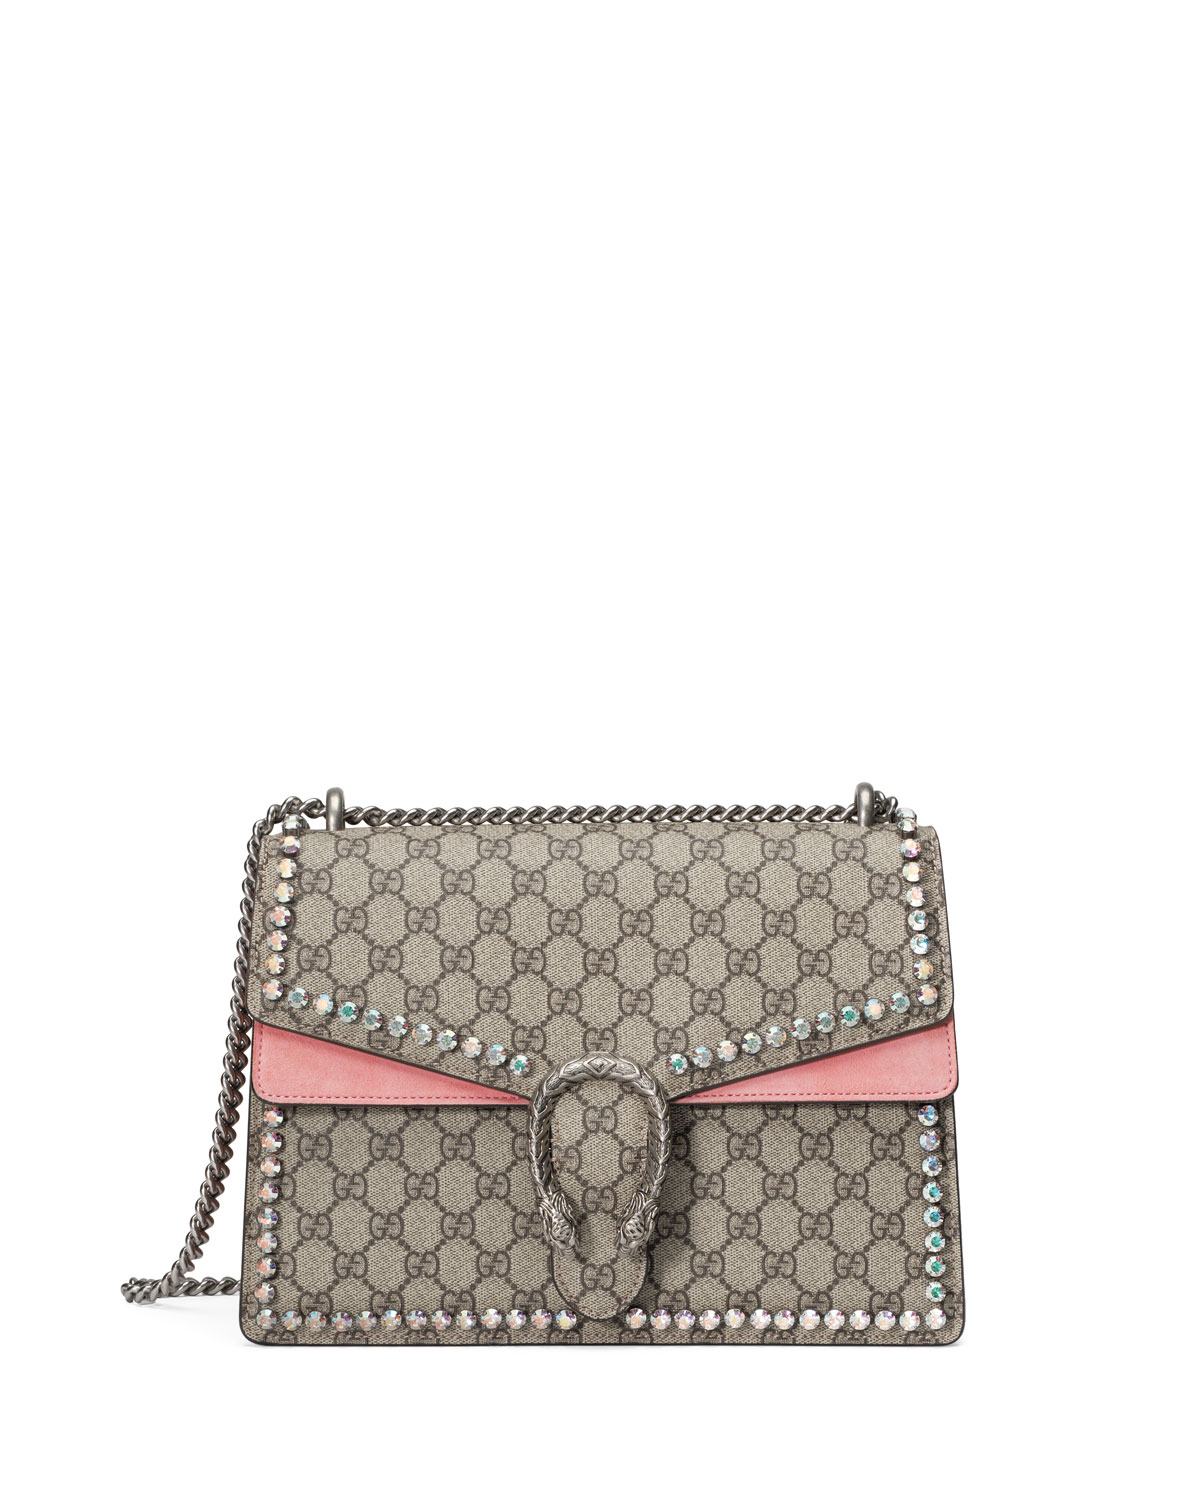 8c93bf332d7 Gucci Dionysus GG Canvas Chain Shoulder Bag with Crystals